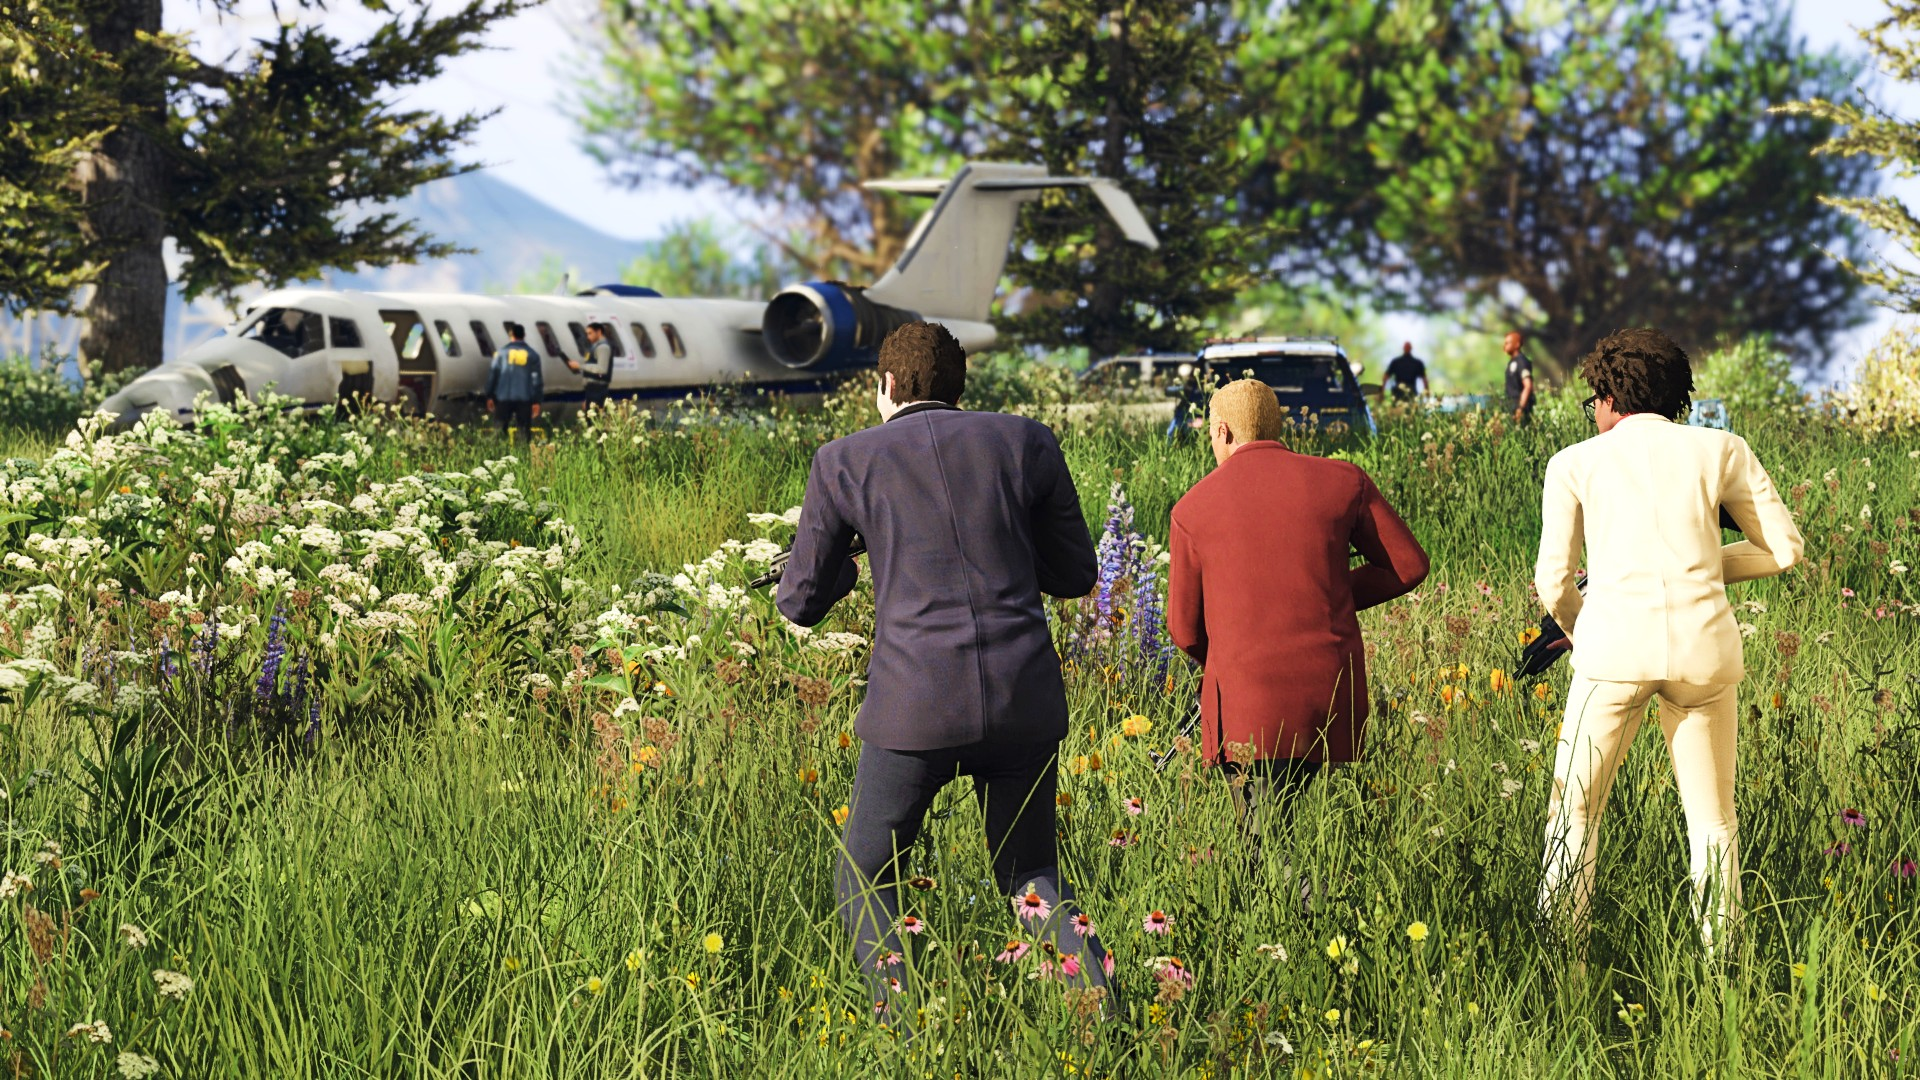 GTA Online's weekly update adds seven new Survival modes